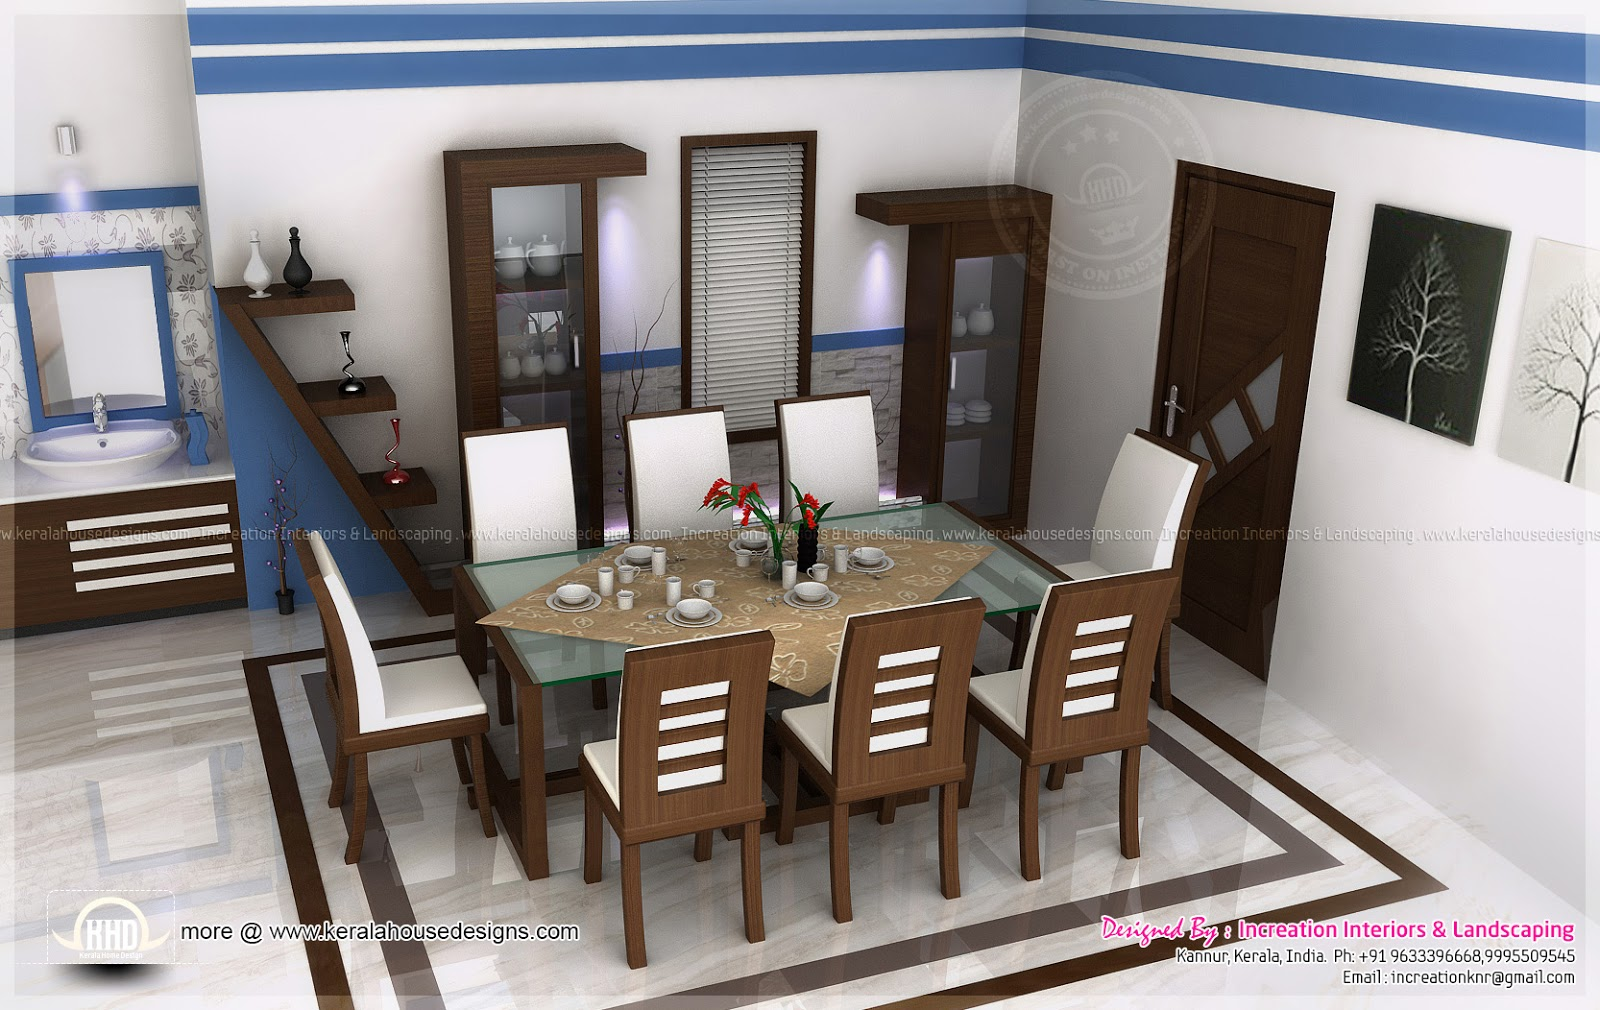 August 2013 kerala home design and floor plans - Interior design dining room ...